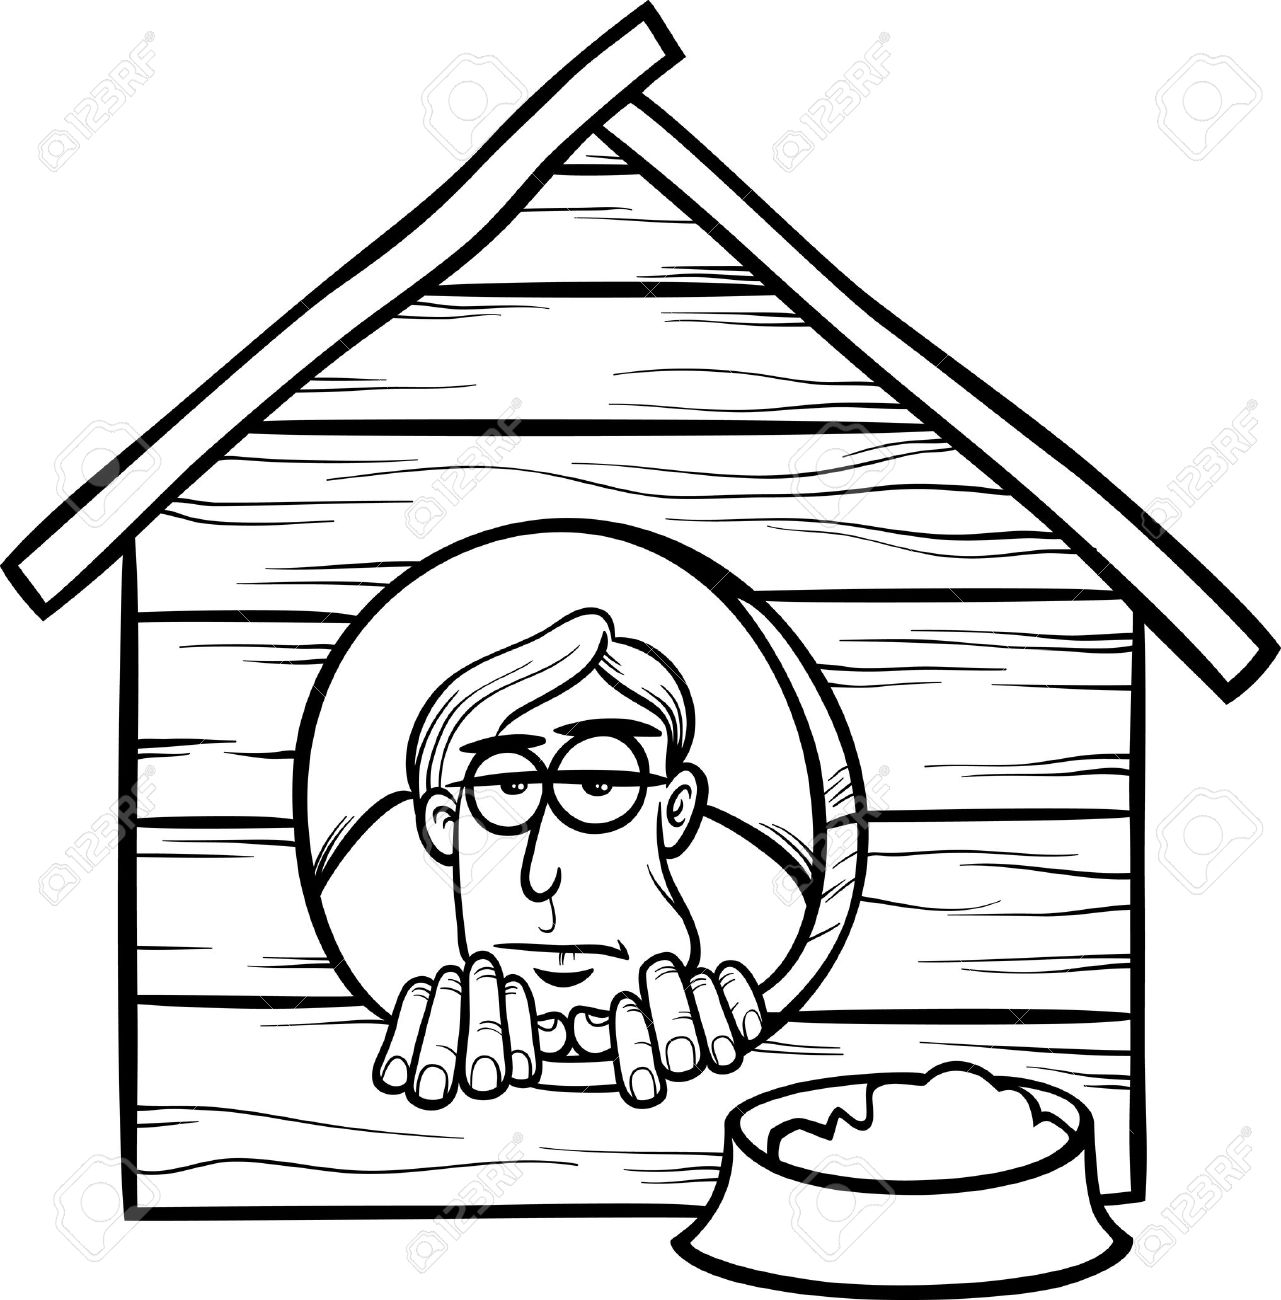 Black And White Cartoon Humor Concept Illustration Of In The Dog House Saying Or Proverb For